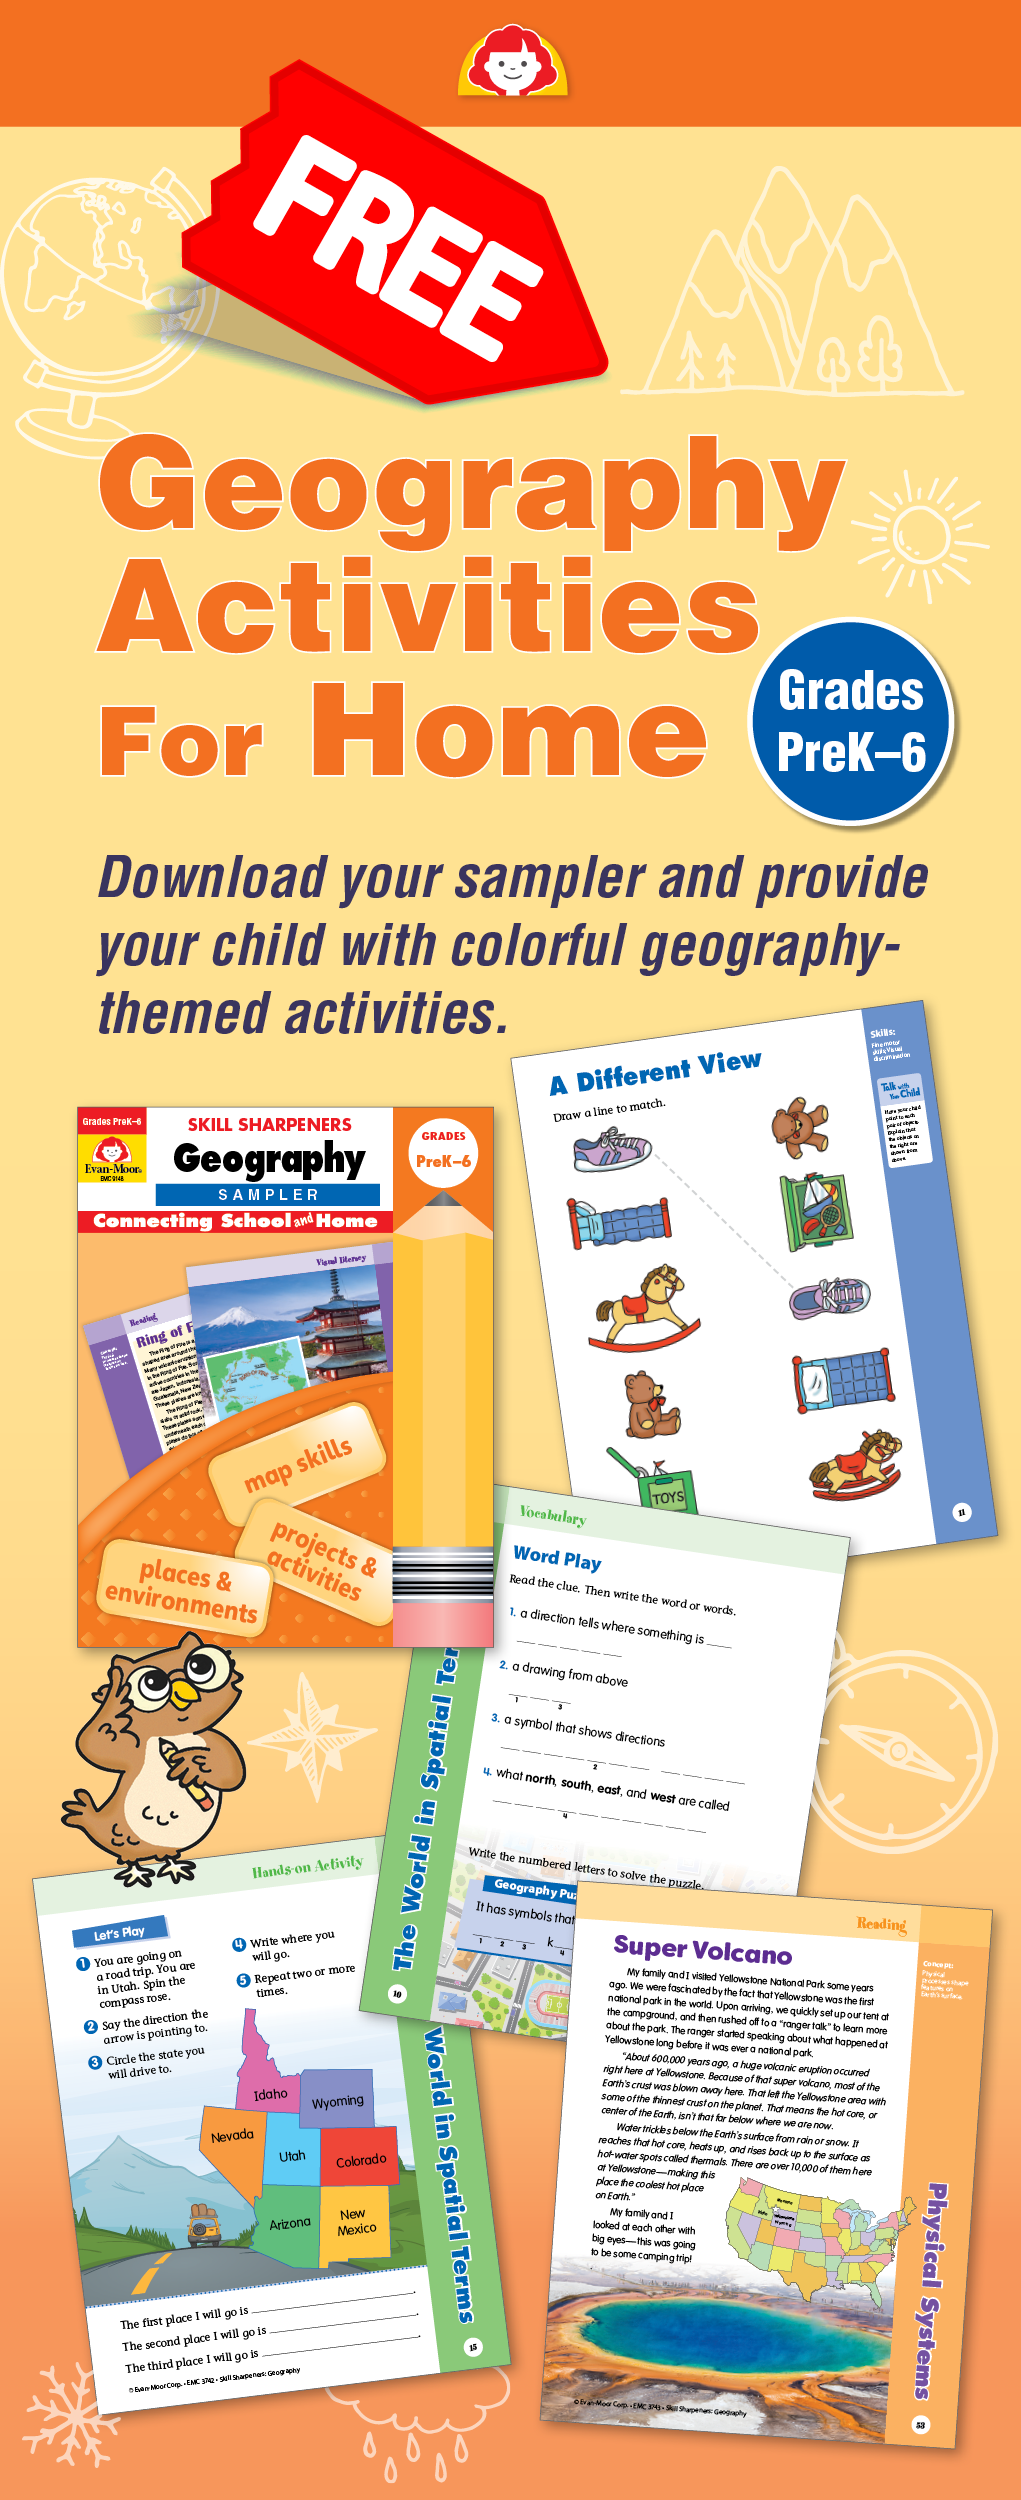 Free Sample Lessons For Skill Sharpeners Geography Enjoy - Free geography games